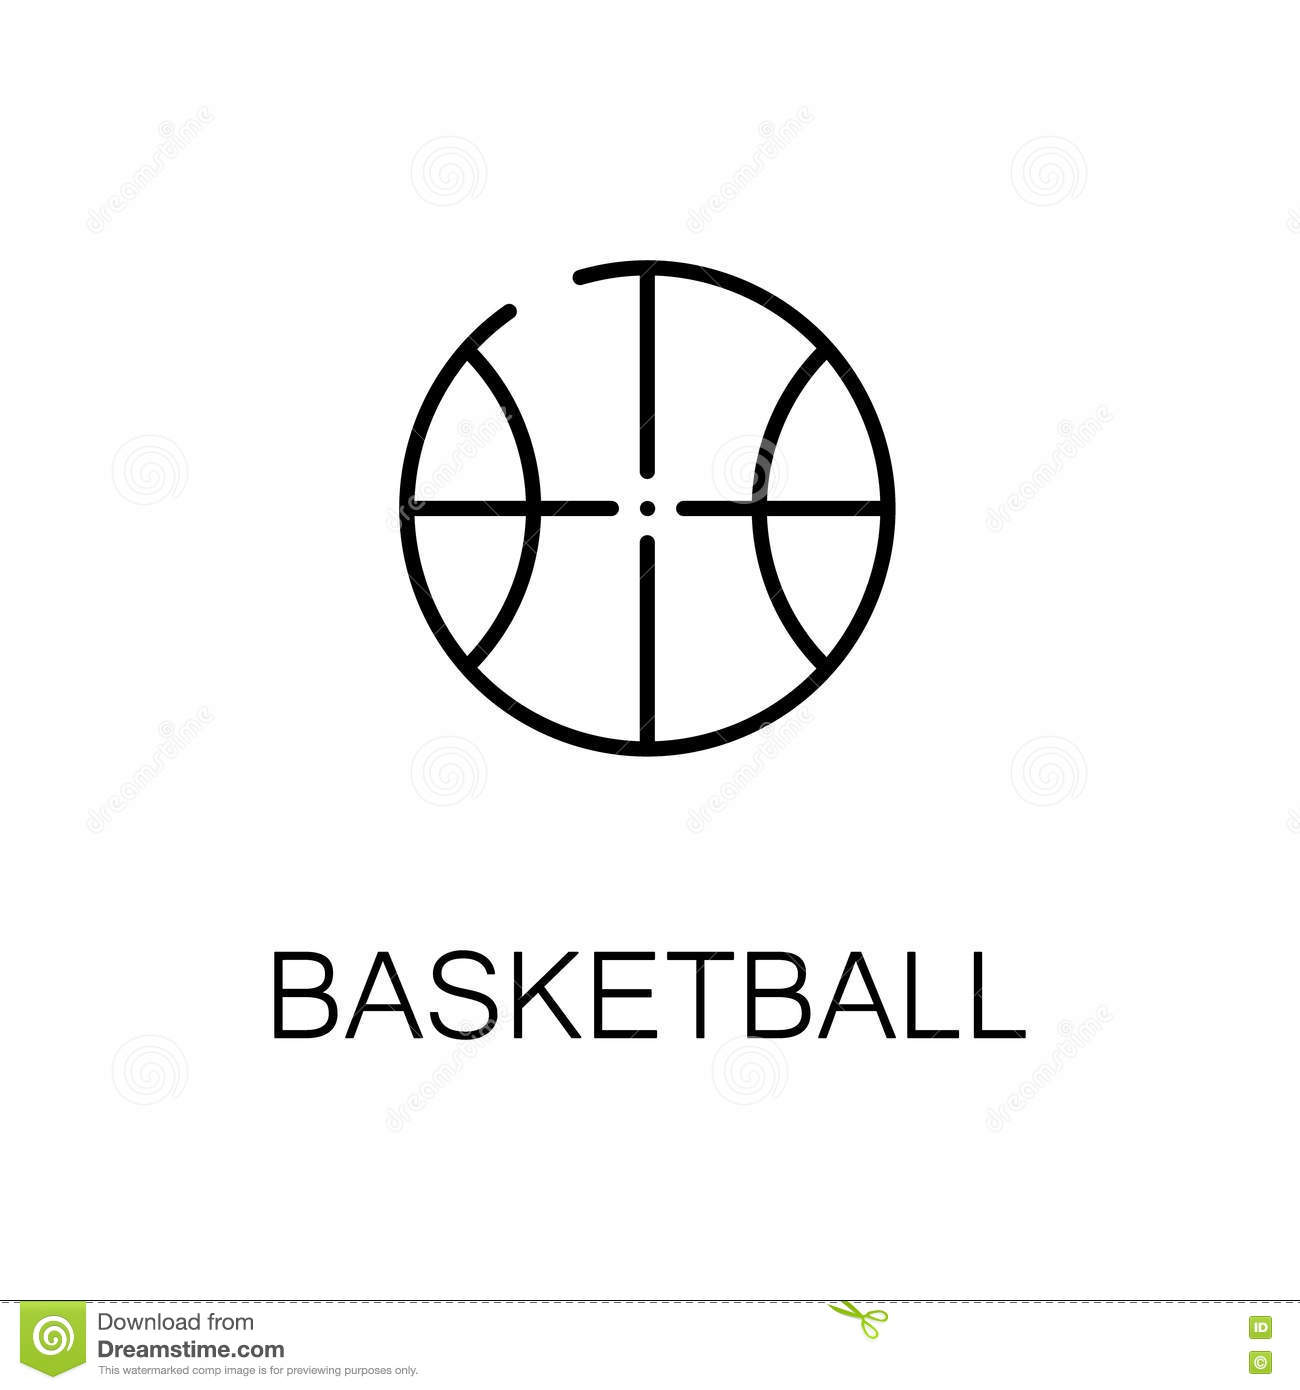 Basketball flat icon or logo for web design stock vector basketball flat icon or logo for web design biocorpaavc Choice Image